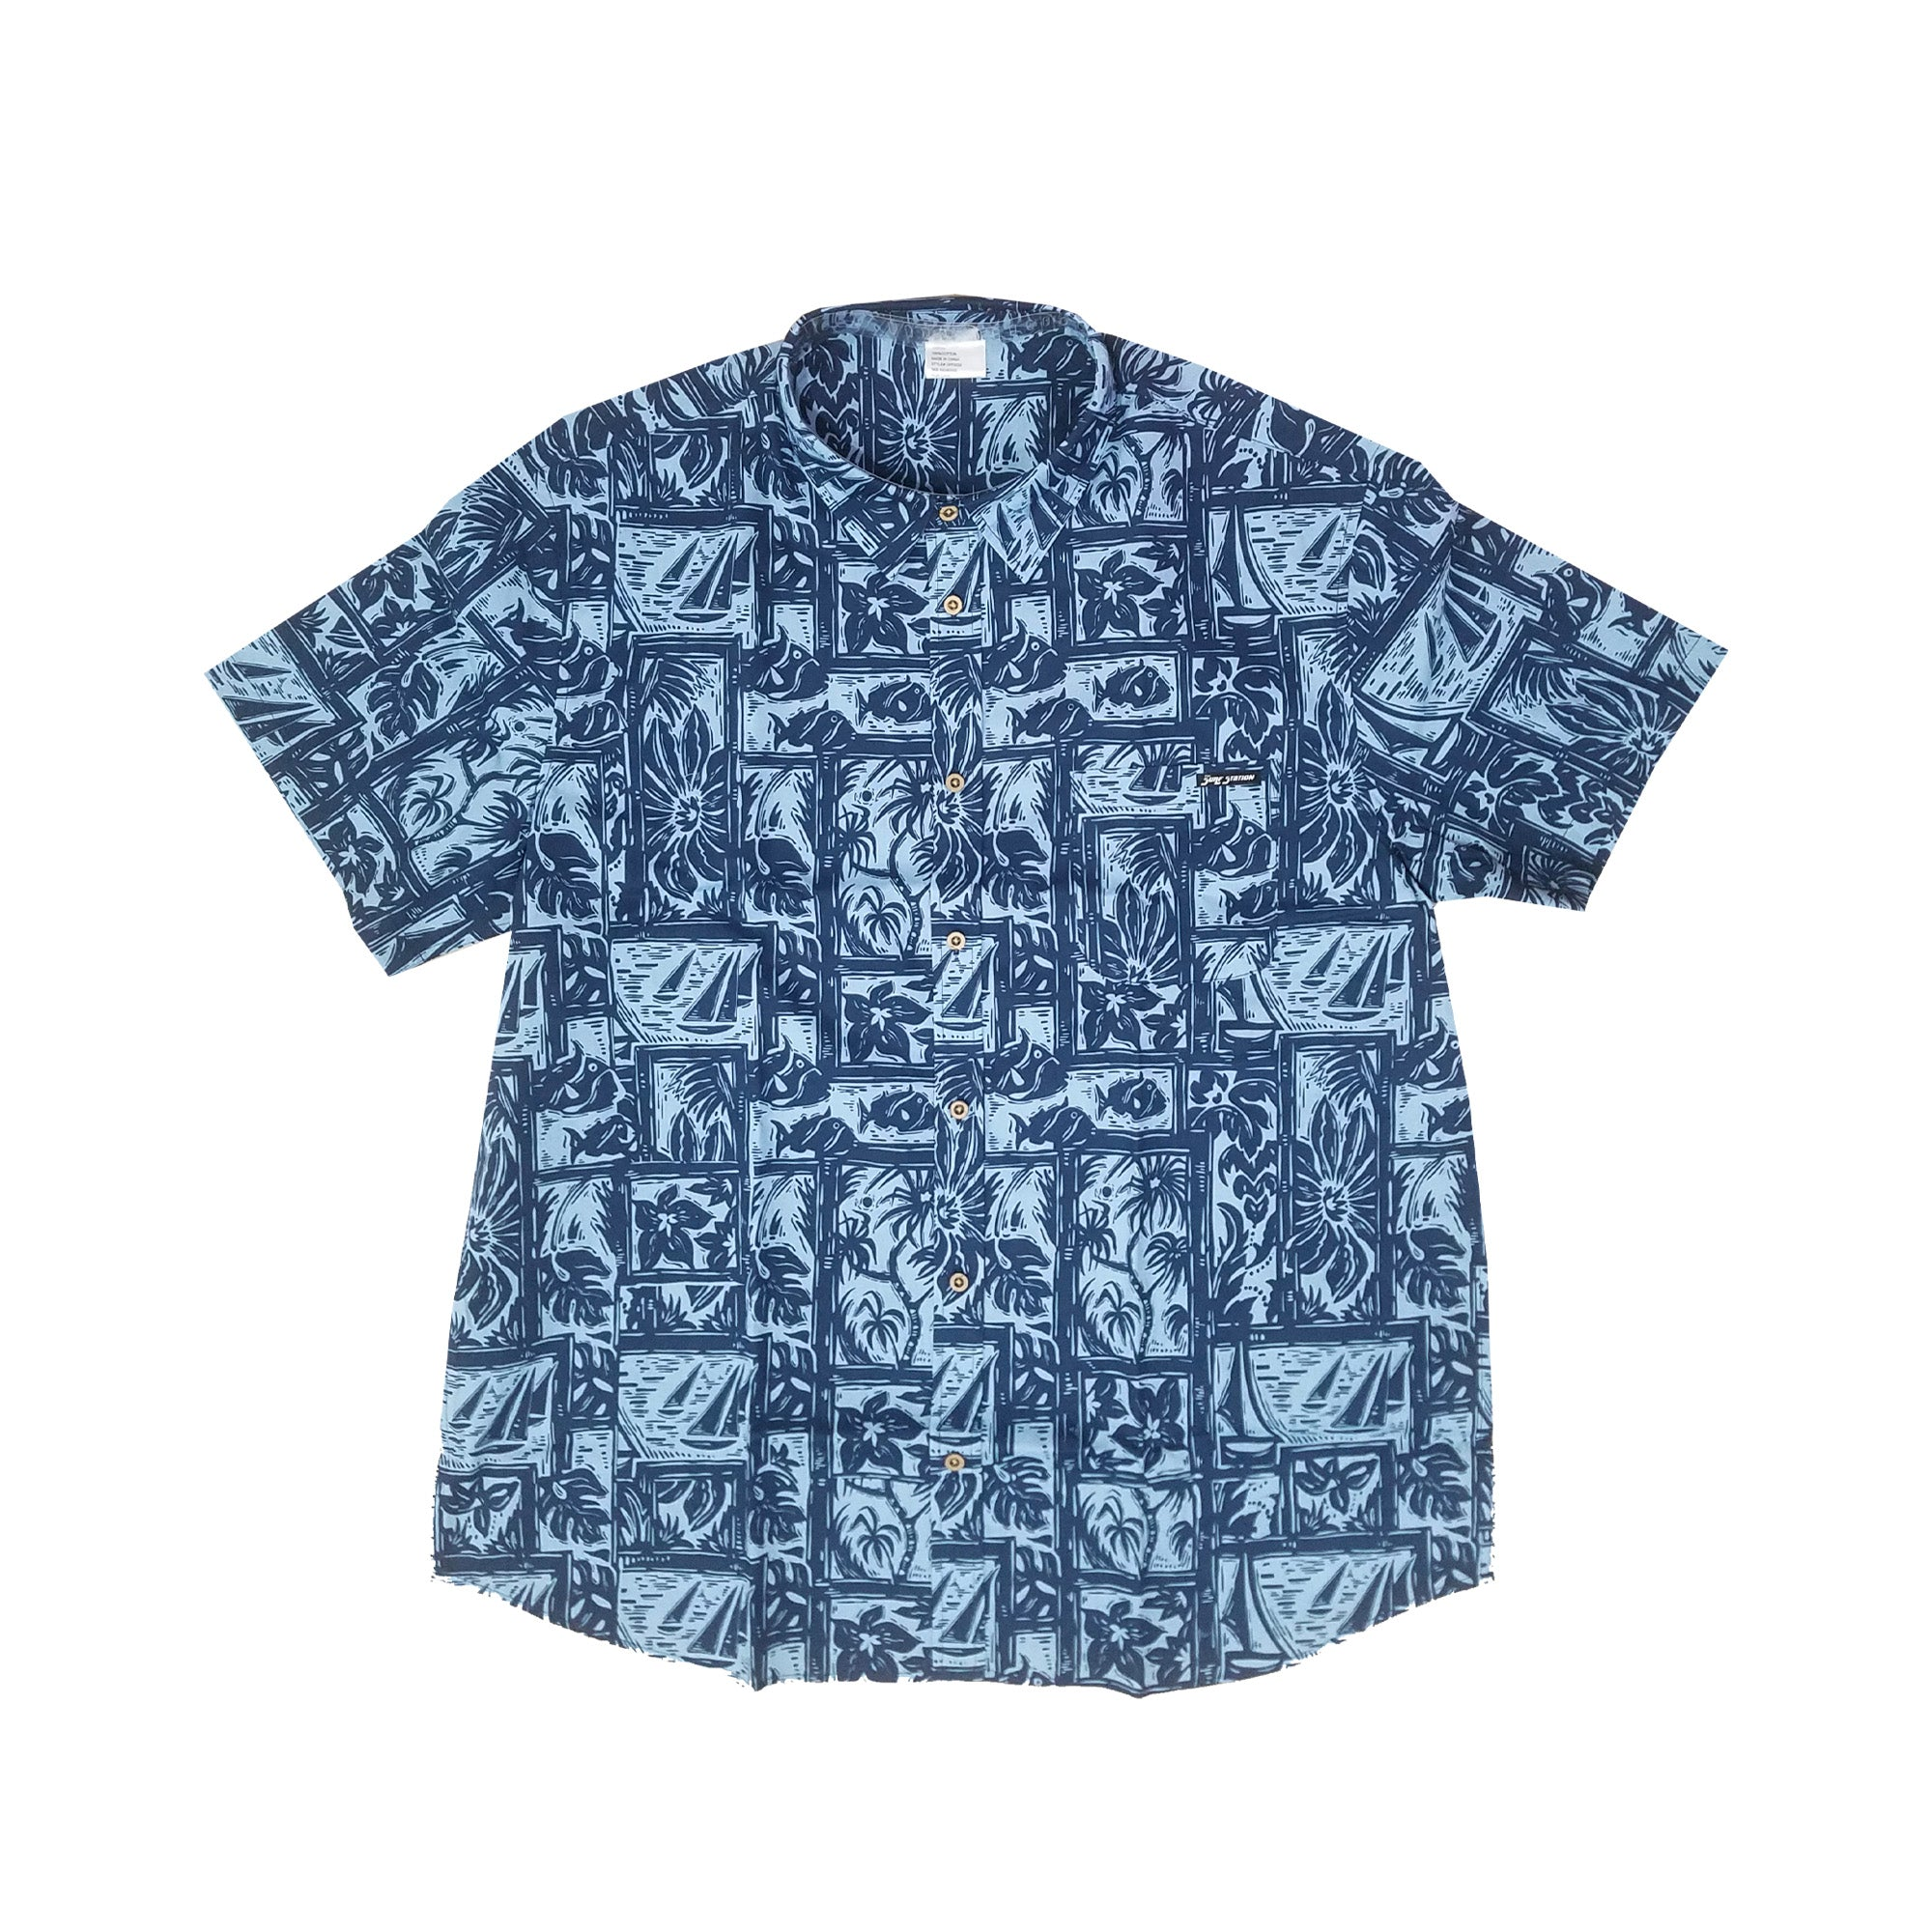 Surf Station Offshore Oxford Men's Dress Shirt